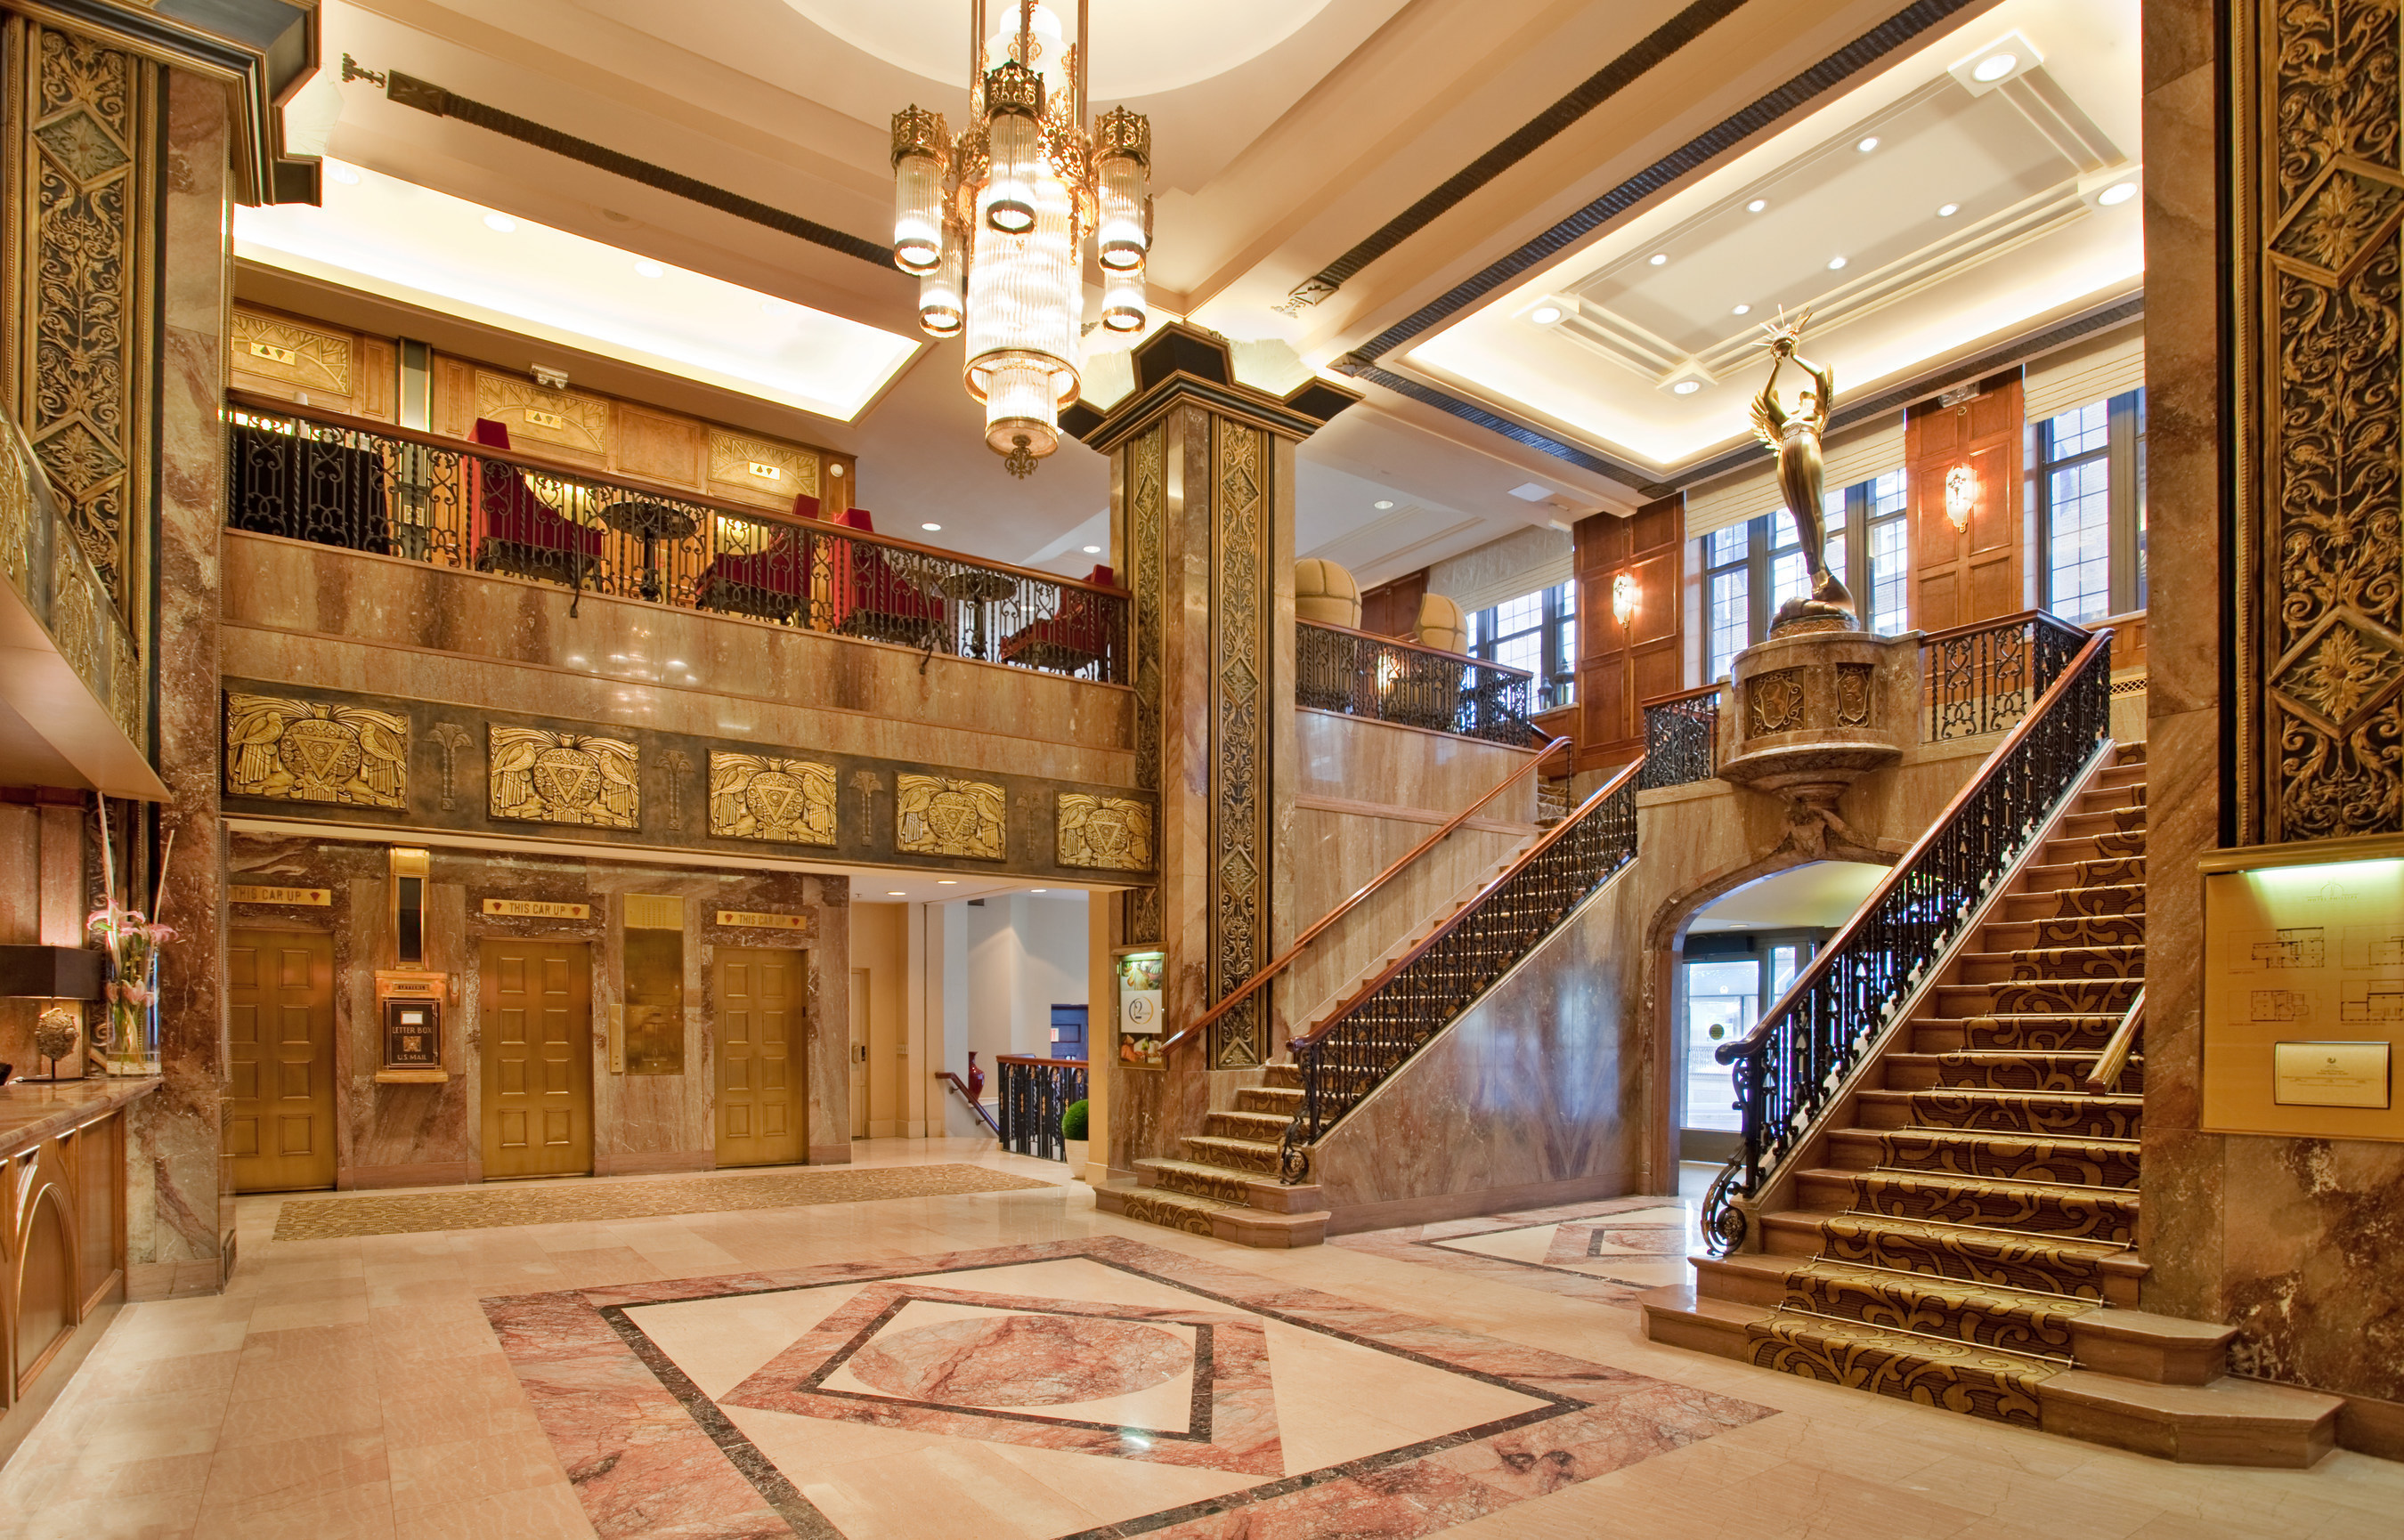 Arbor Lodging Partners has acquired Kansas City's historic Hotel Phillips. The hotel's dramatic art deco lobby is pictured. NVN Hotels is now the hotel's management company, as Arbor Lodging Partners launches an extensive renovation and property revival. Upon completion, the hotel will join the Curio Collection by Hilton, a collection of unique hotels appealing to travelers seeking local discovery.